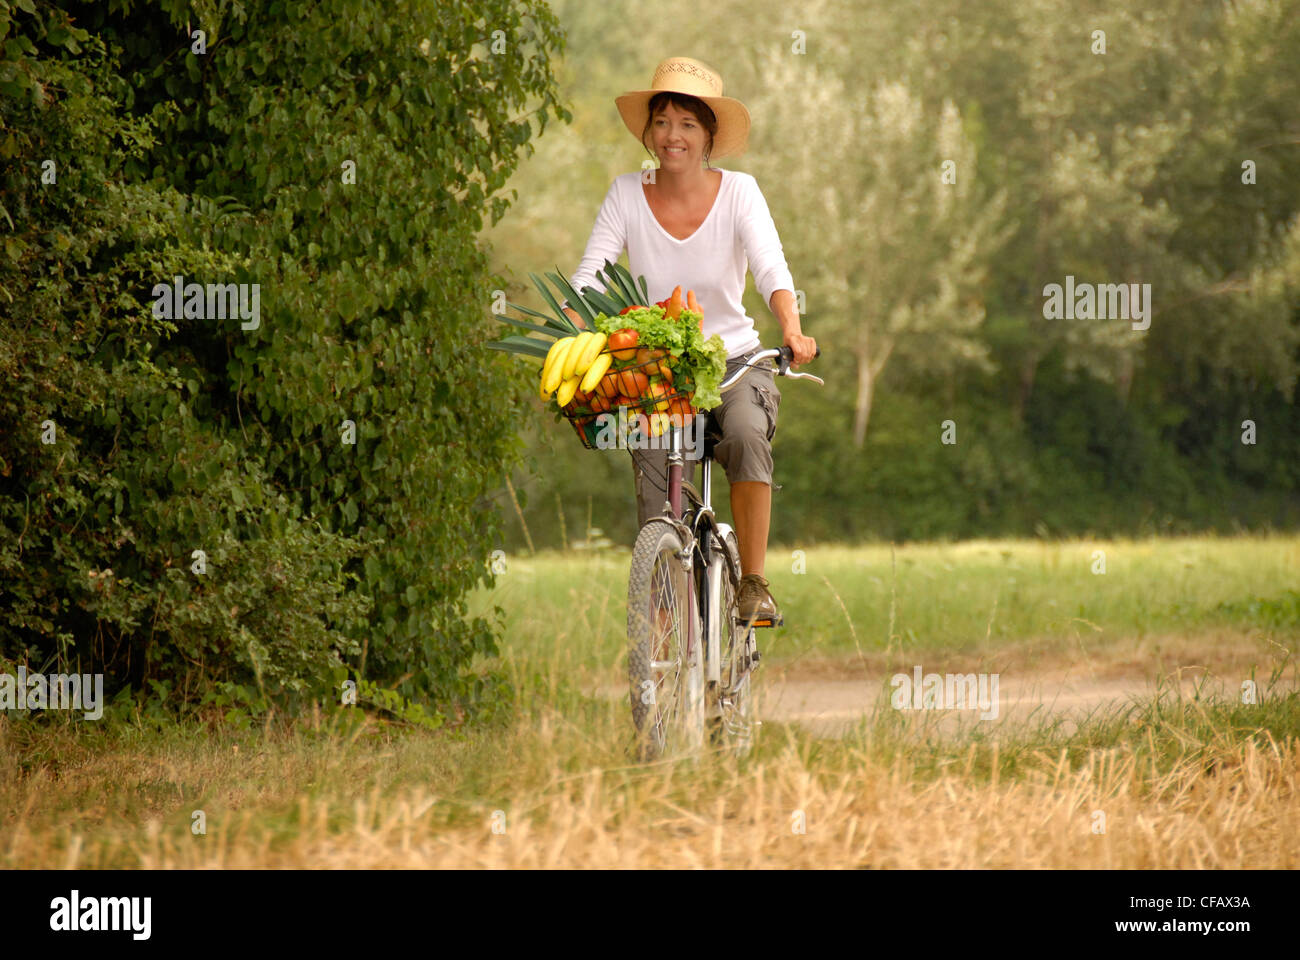 Summer, food, nutrition, land life, health, vegetables, fruits, purchase, vitamins, bicycle, bike, healthy, woman, Stock Photo